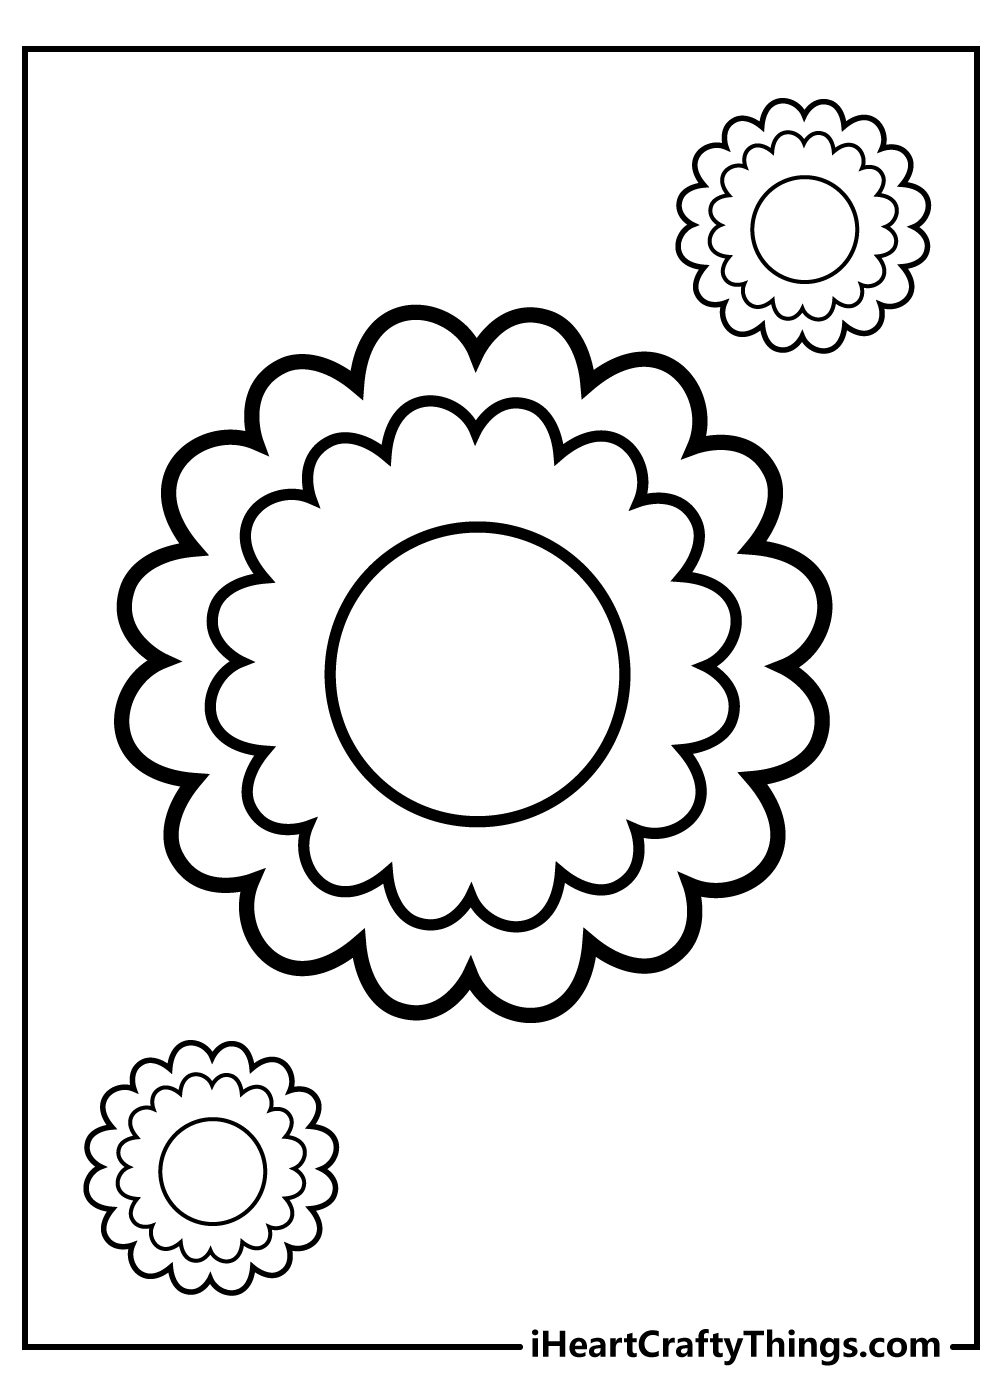 easy to color flower pages for kids free download